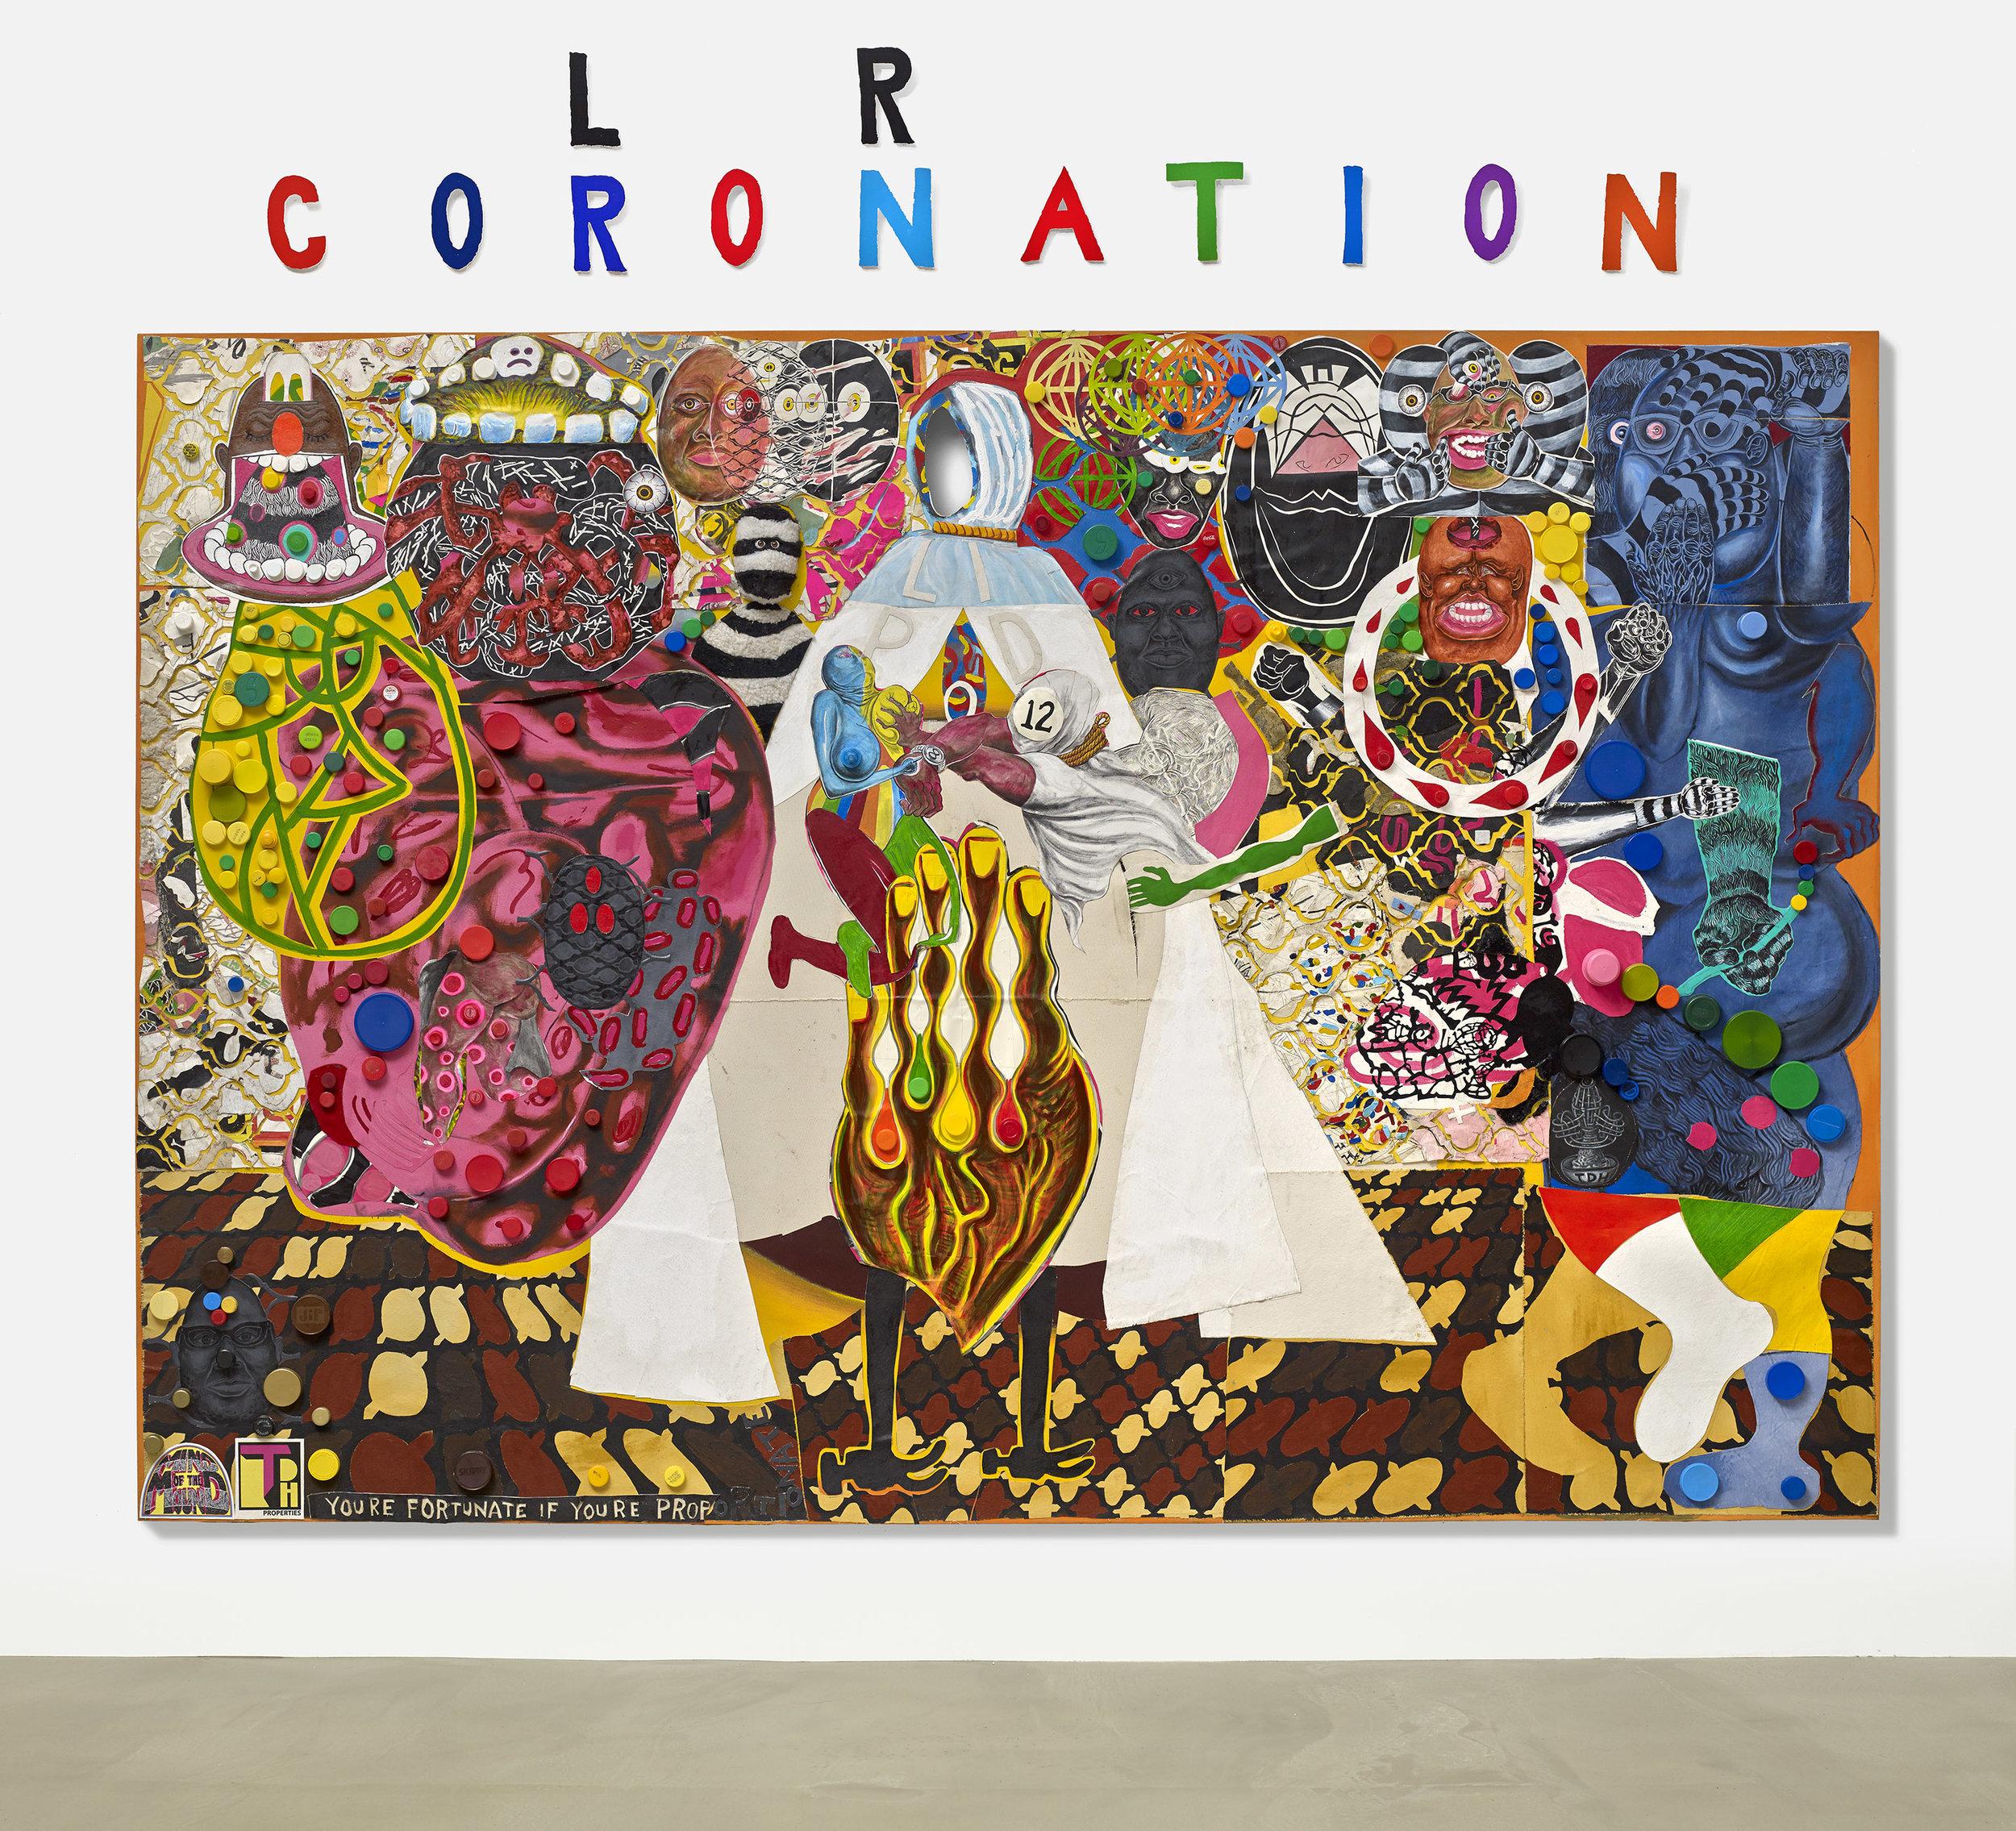 Trenton Doyle Hancock,  Coloration Coronation , 2016, acrylic and mixed media on canvas, 90 x 132 in. Image courtesy of the Artist and James Cohan, New York